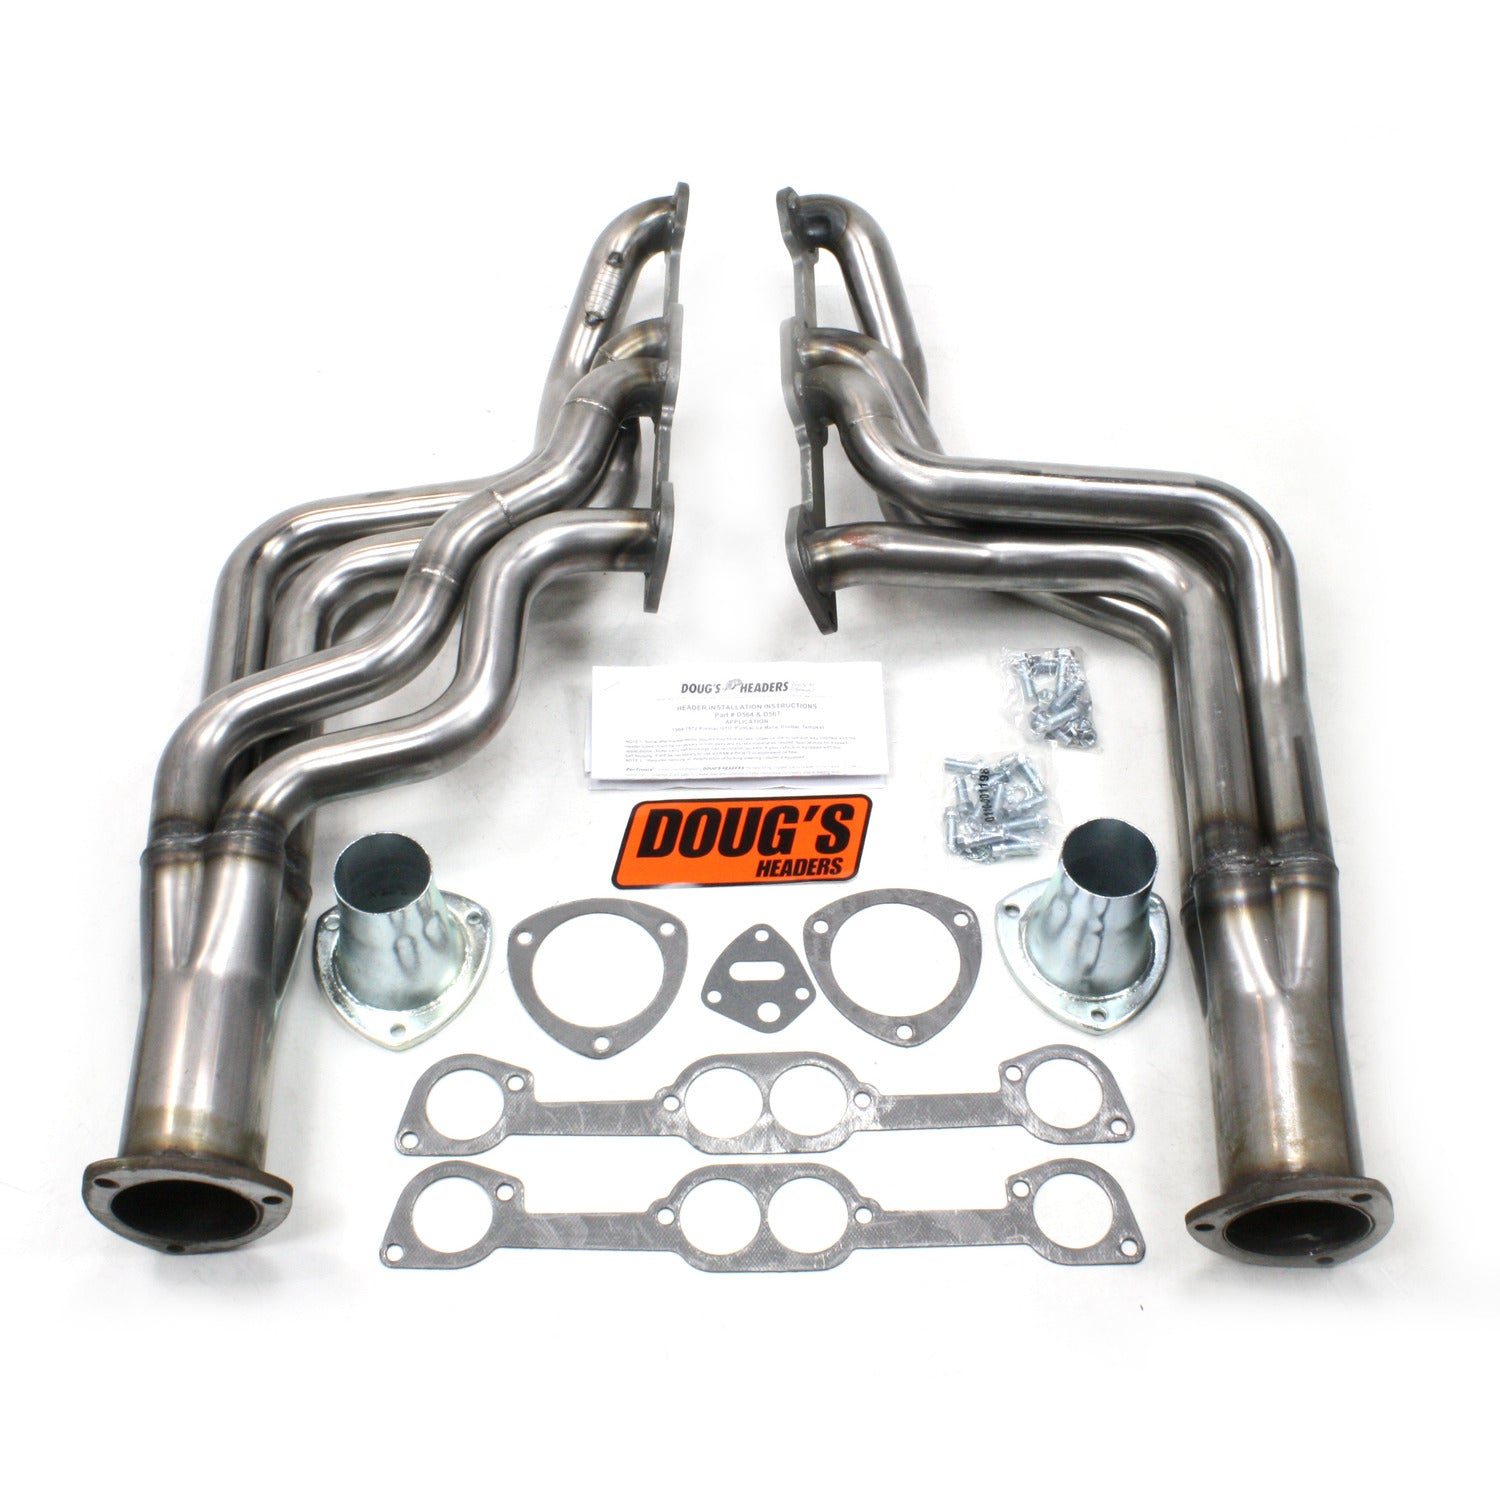 "Doug's Headers D567-R 1 7/8"" 4-Tube Full Length Header Pontiac GTO 326-455 64-72 Raw Steel"